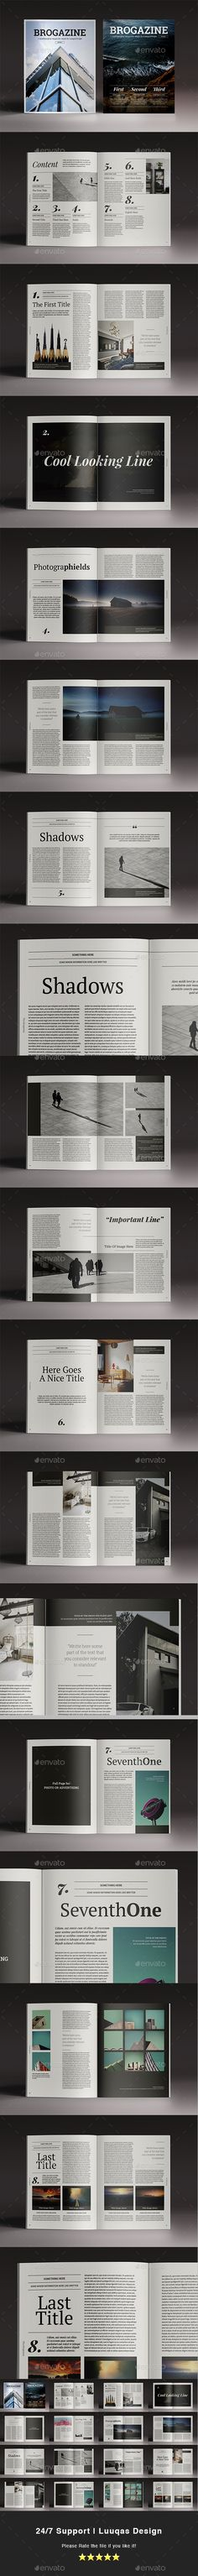 Blackazine Indesign Template | Indesign templates, Template and Graphics